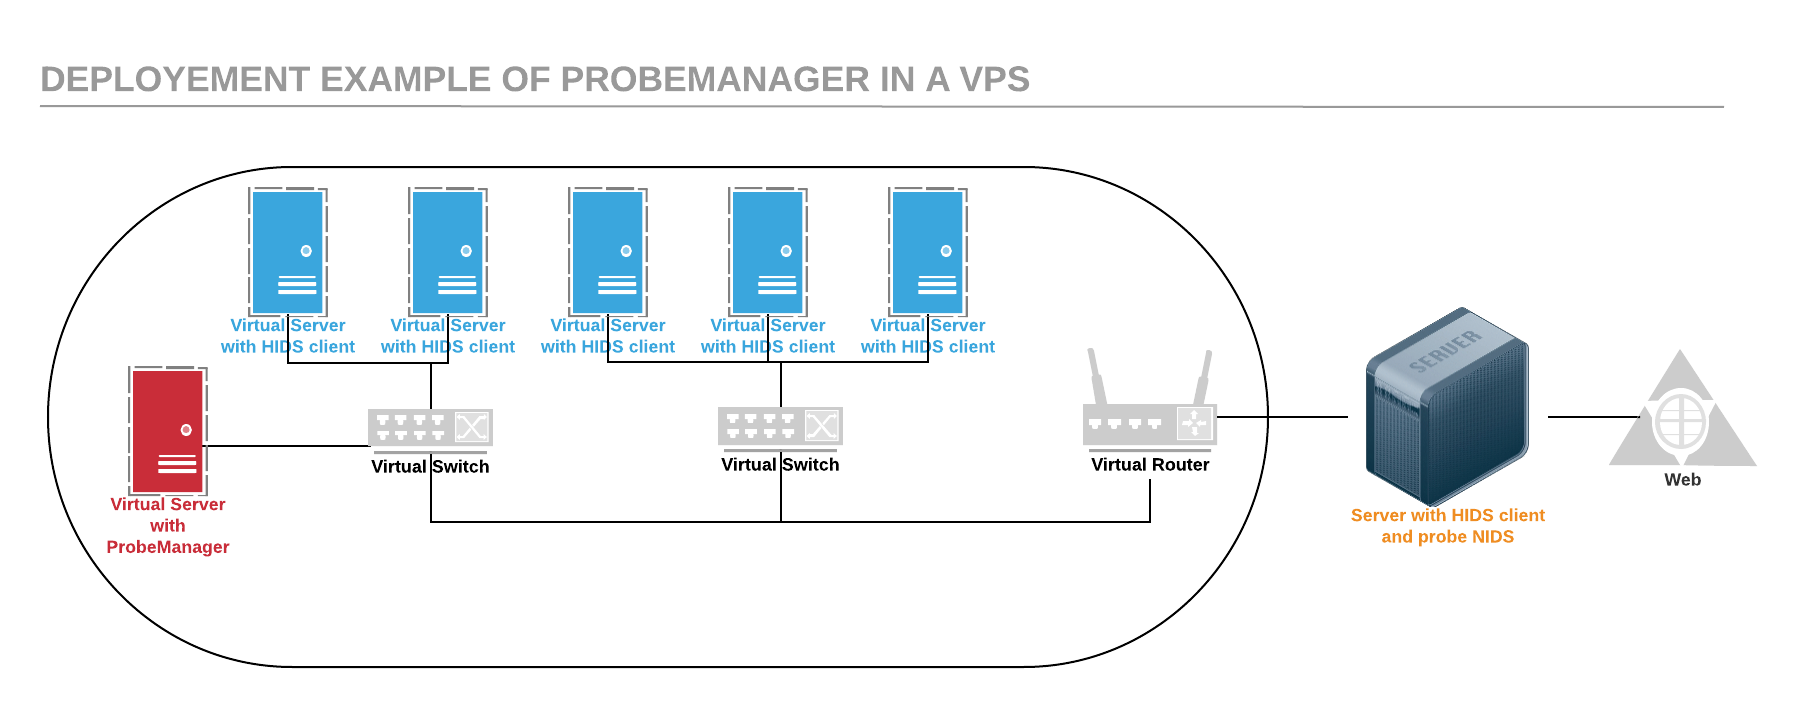 Deployement example of Probemanager in a VPS